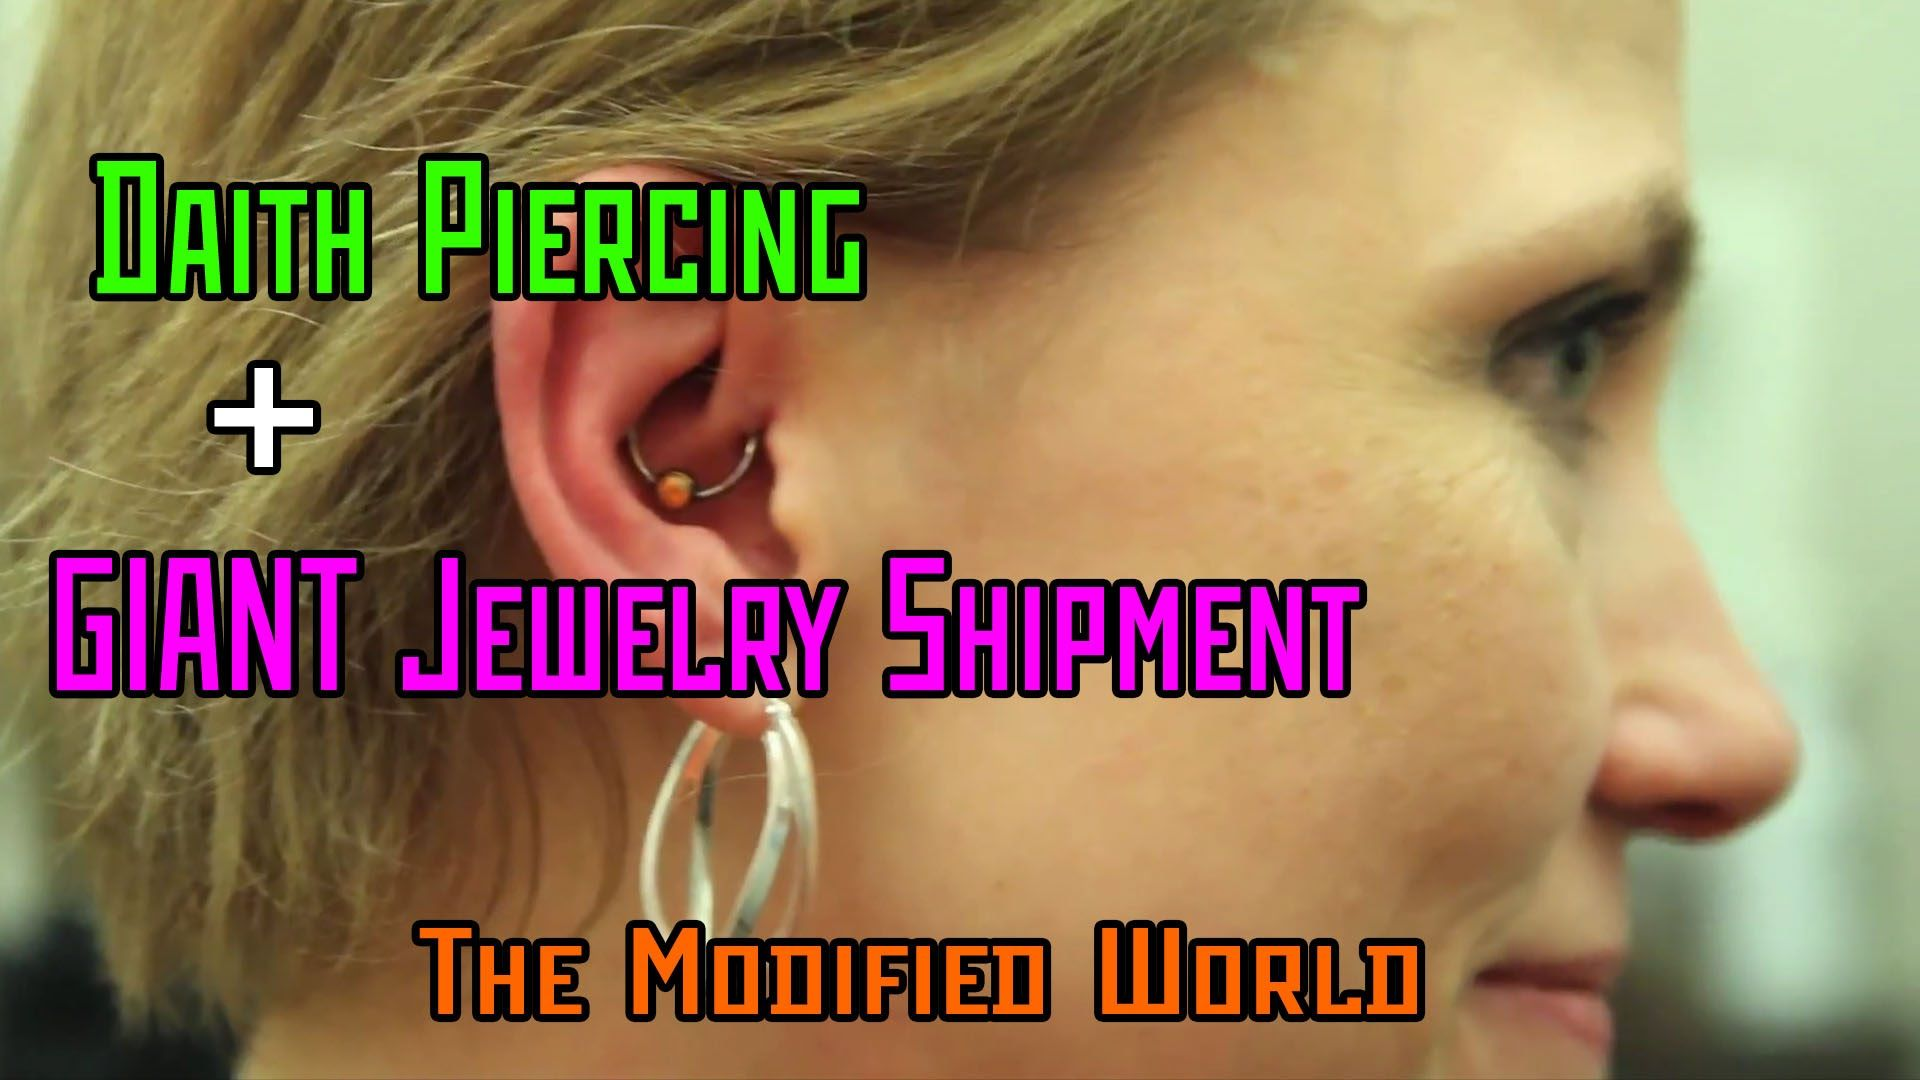 Cartilage piercing bump pop  Daith Piercing  GIANT Jewelry Shipment  Viewer Q THE MODIFIED